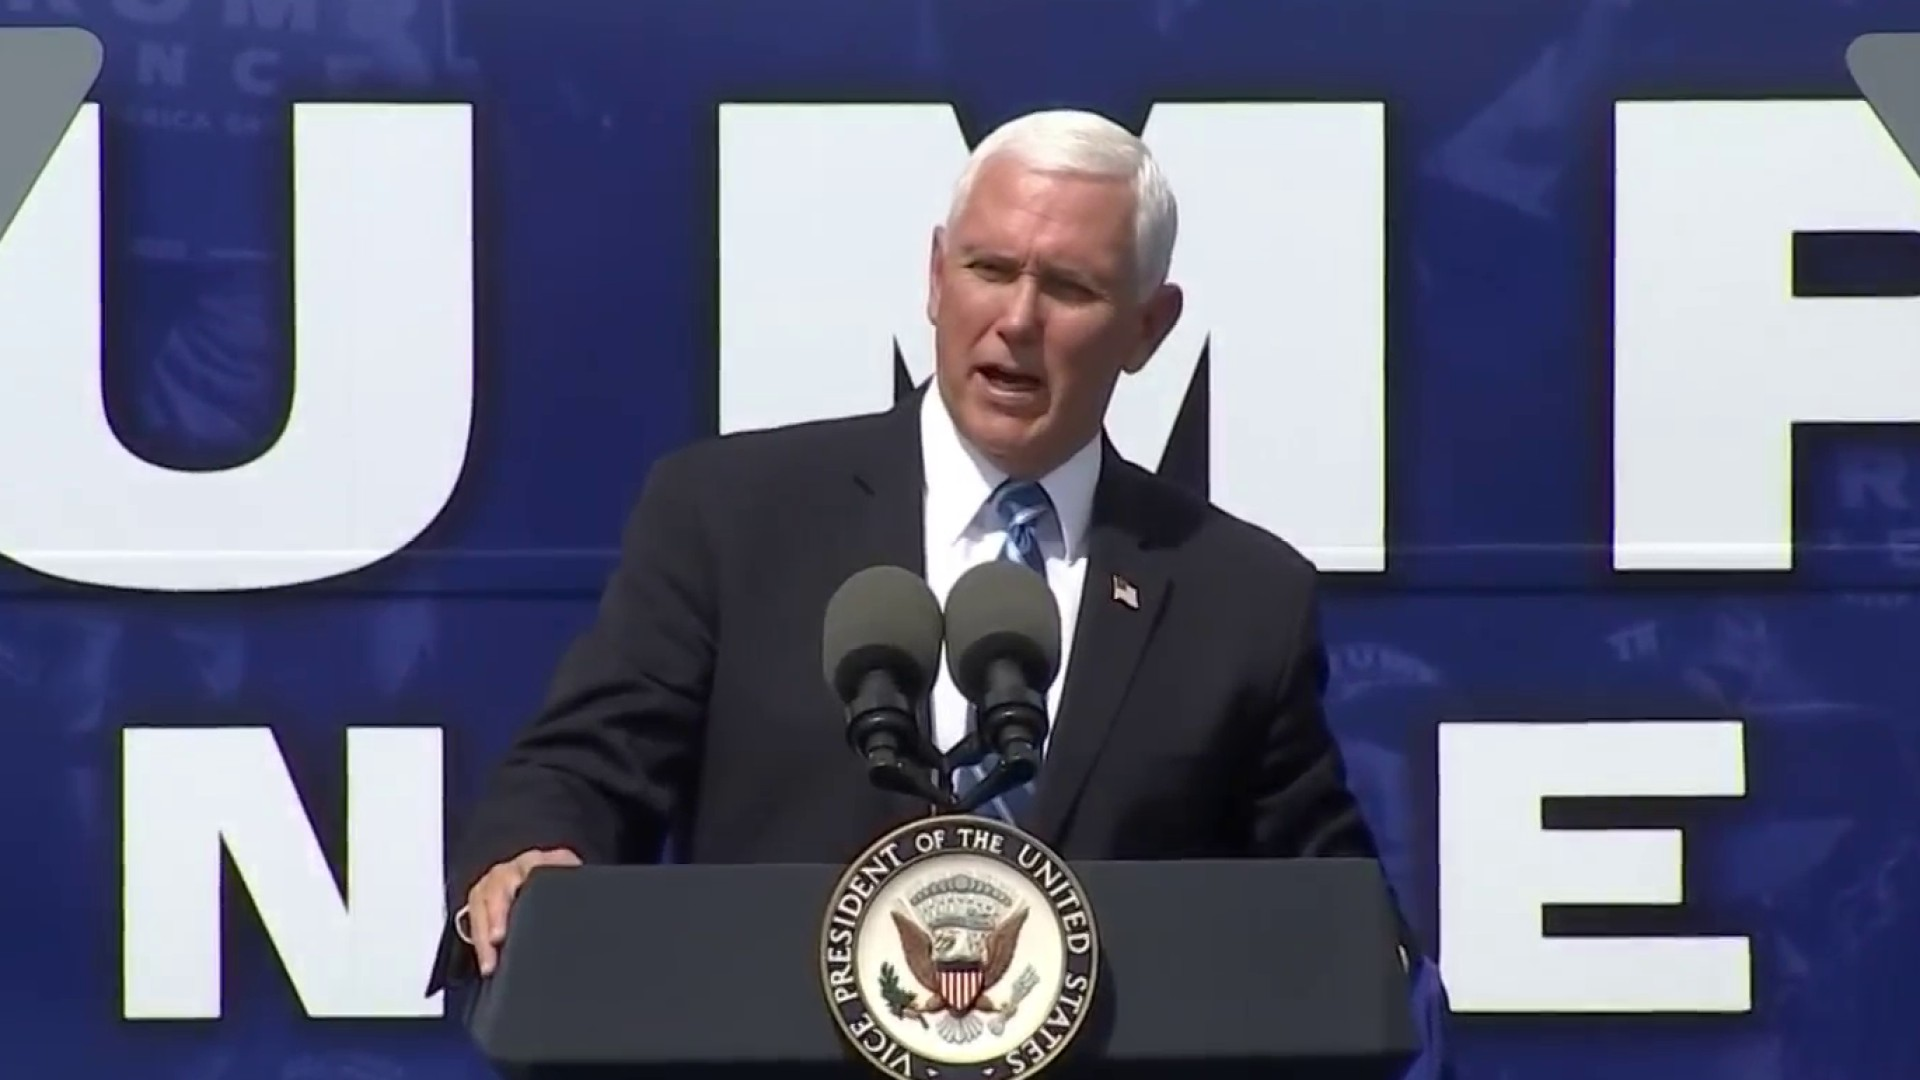 Vice President Pence to Rally in Maine Monday, NH Wednesday